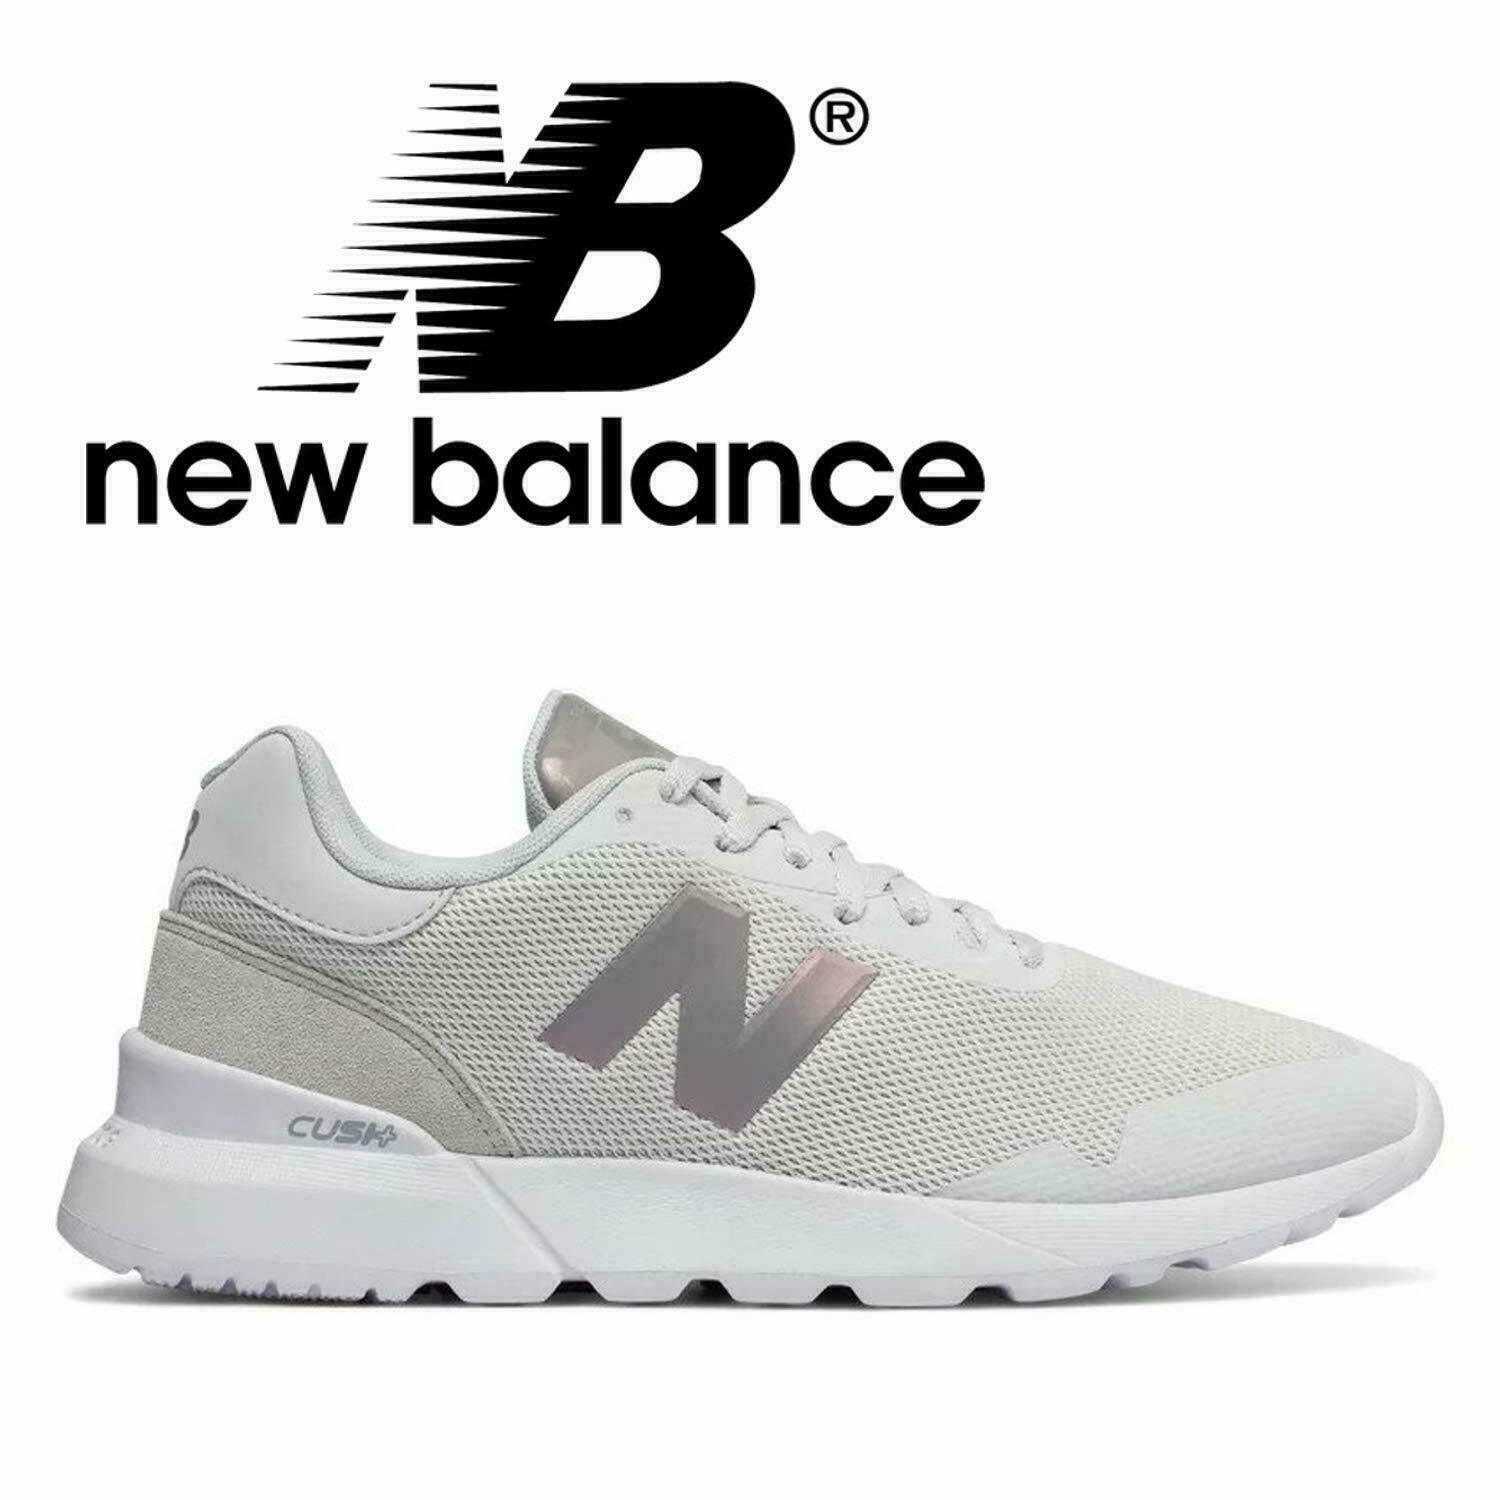 ✅24Hr DELIVERY ✅ NEW BALANCE daSie CLASSIC JOG 515 Laufen TRAINERS rrp